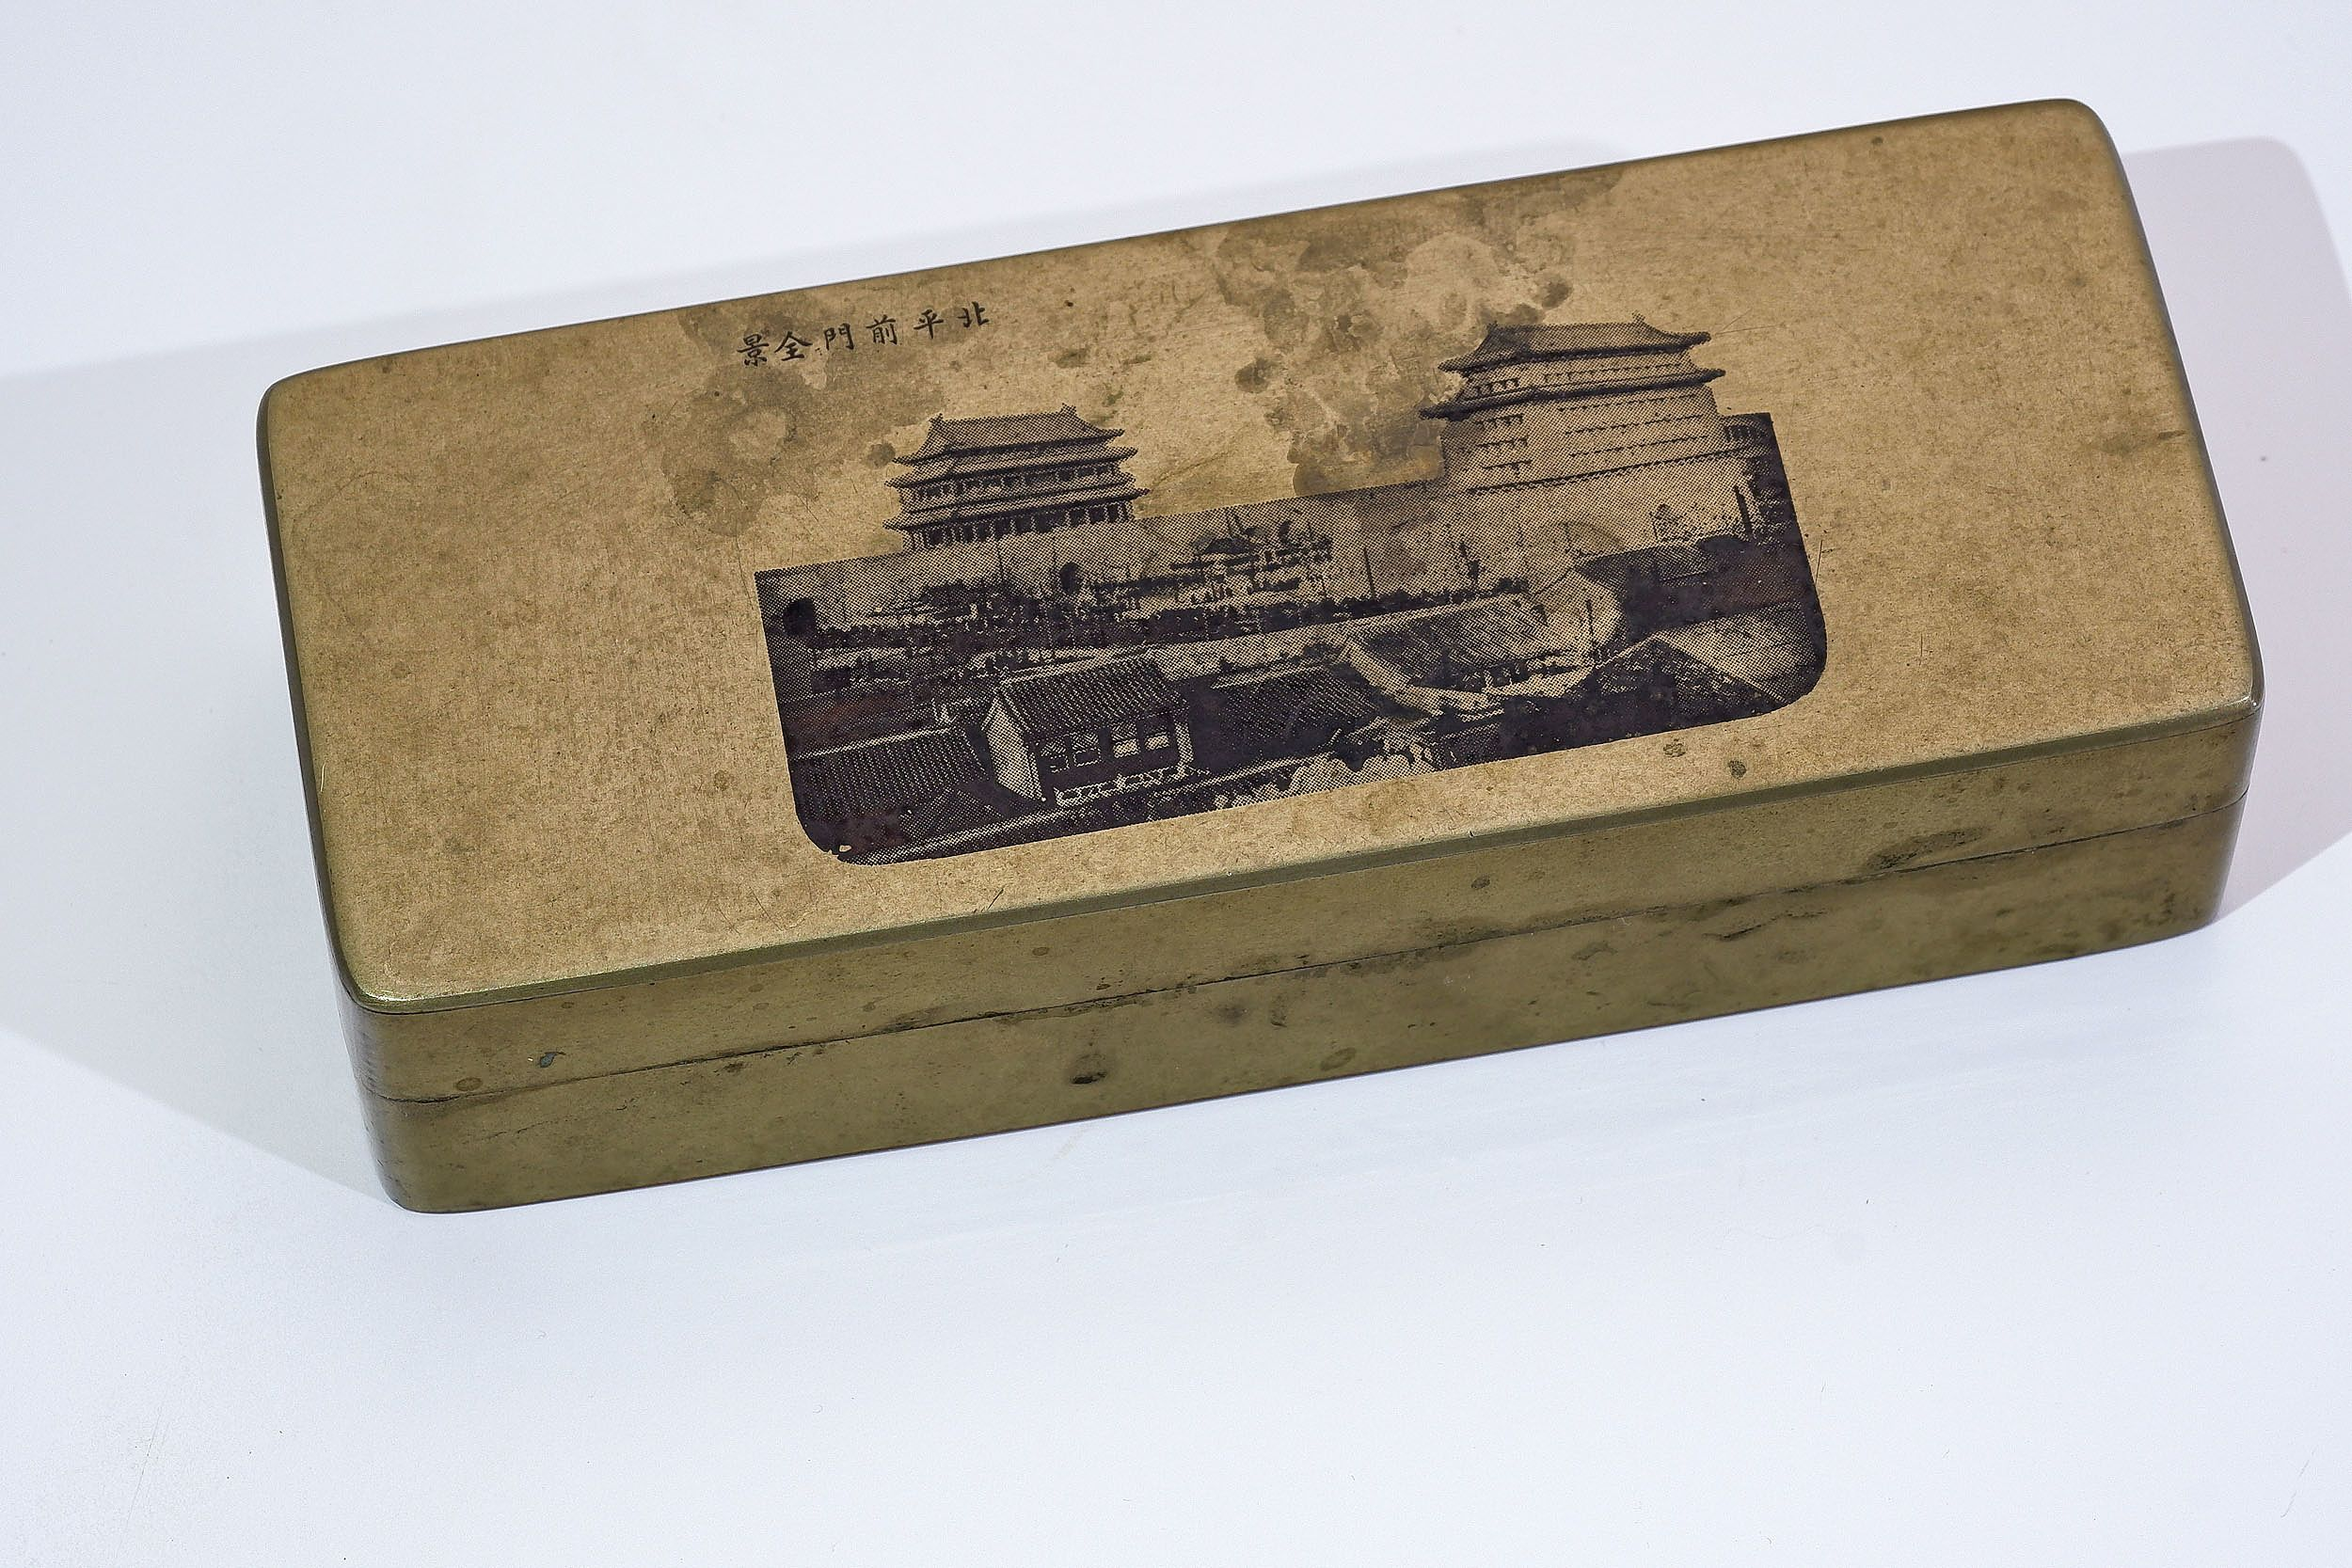 'Chinese Paktong Ink Box Engraved with The Forbidden City'